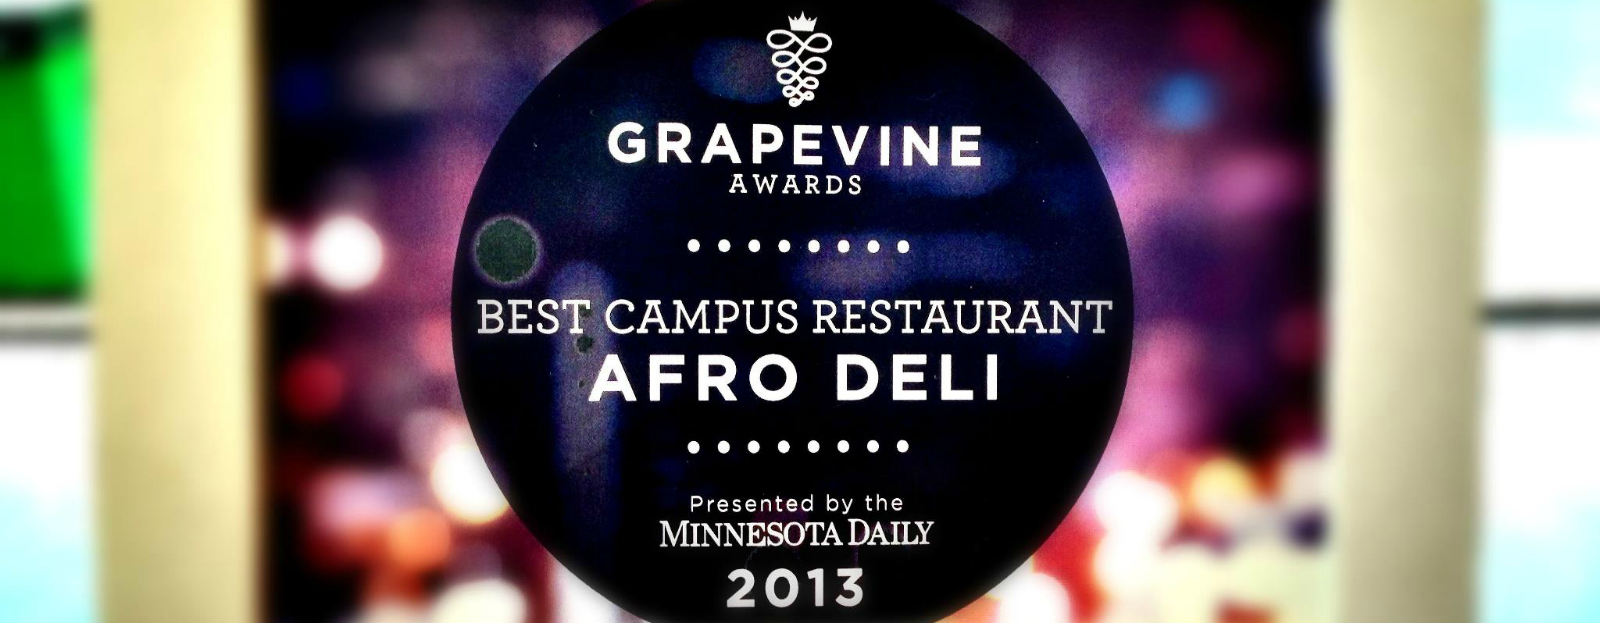 Afro Deli is the Best Restaurant on Campus 2013